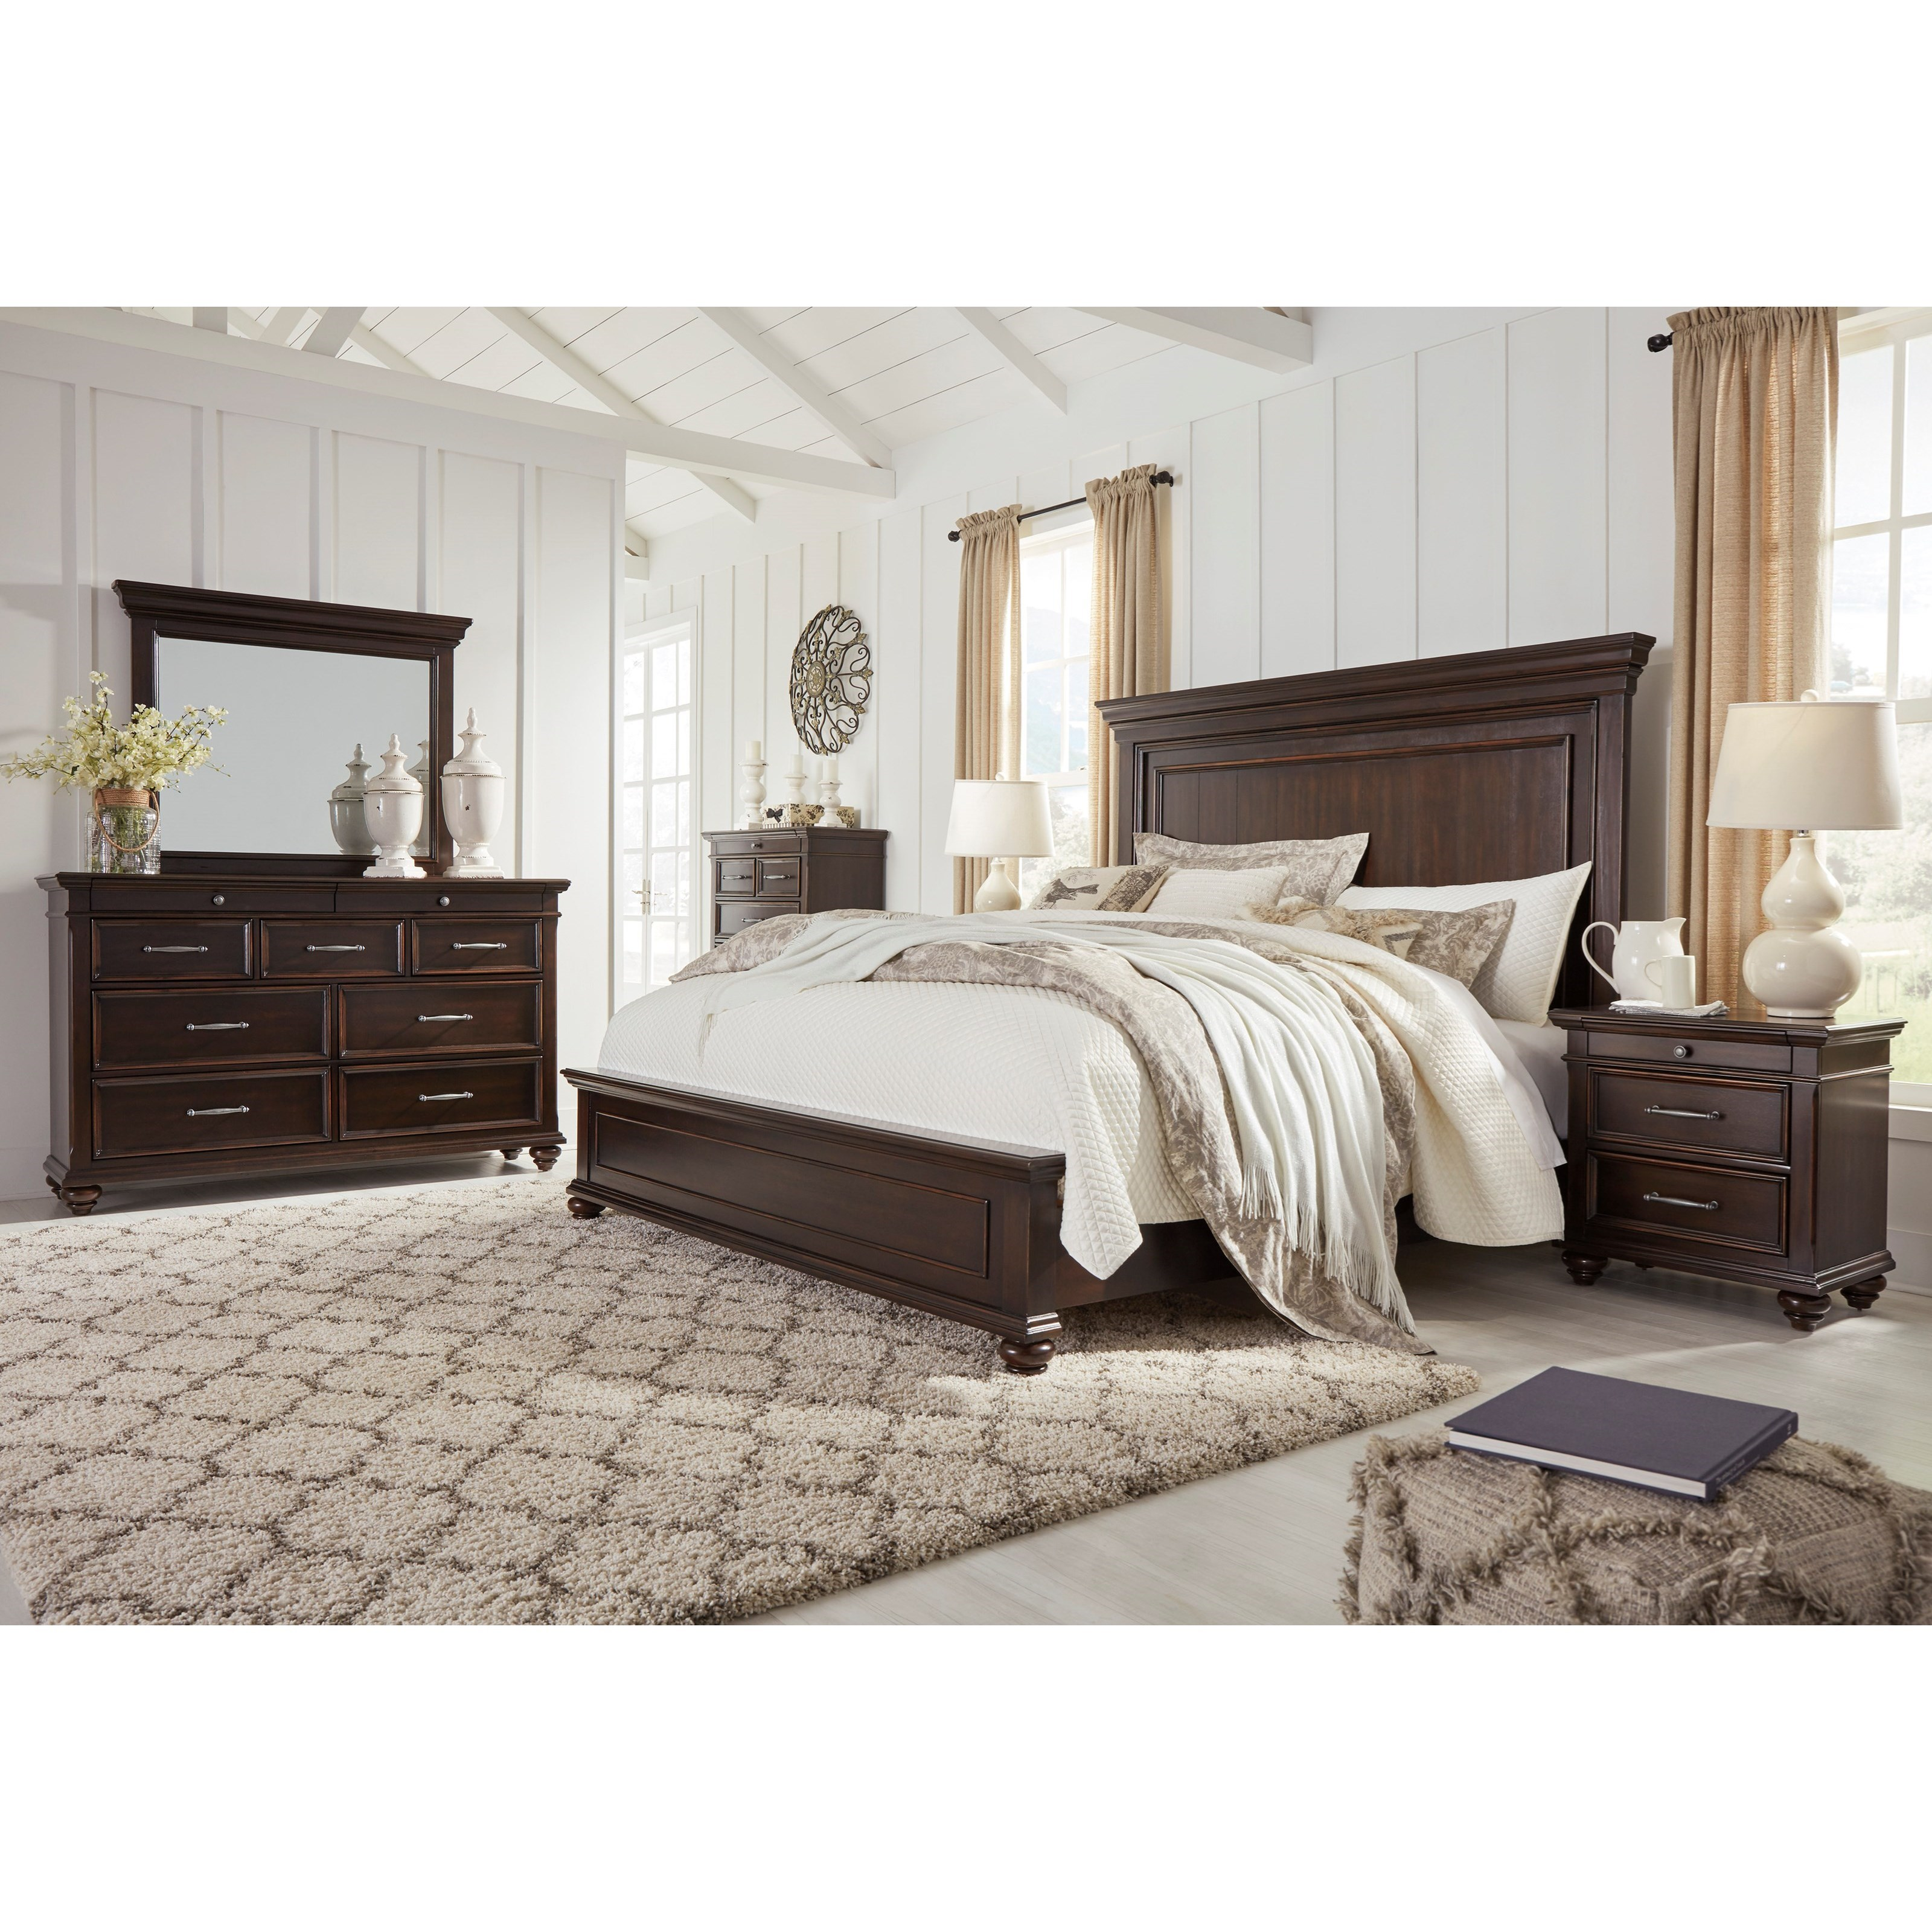 Brynhurst California King Bedroom Group by Signature Design by Ashley at Household Furniture